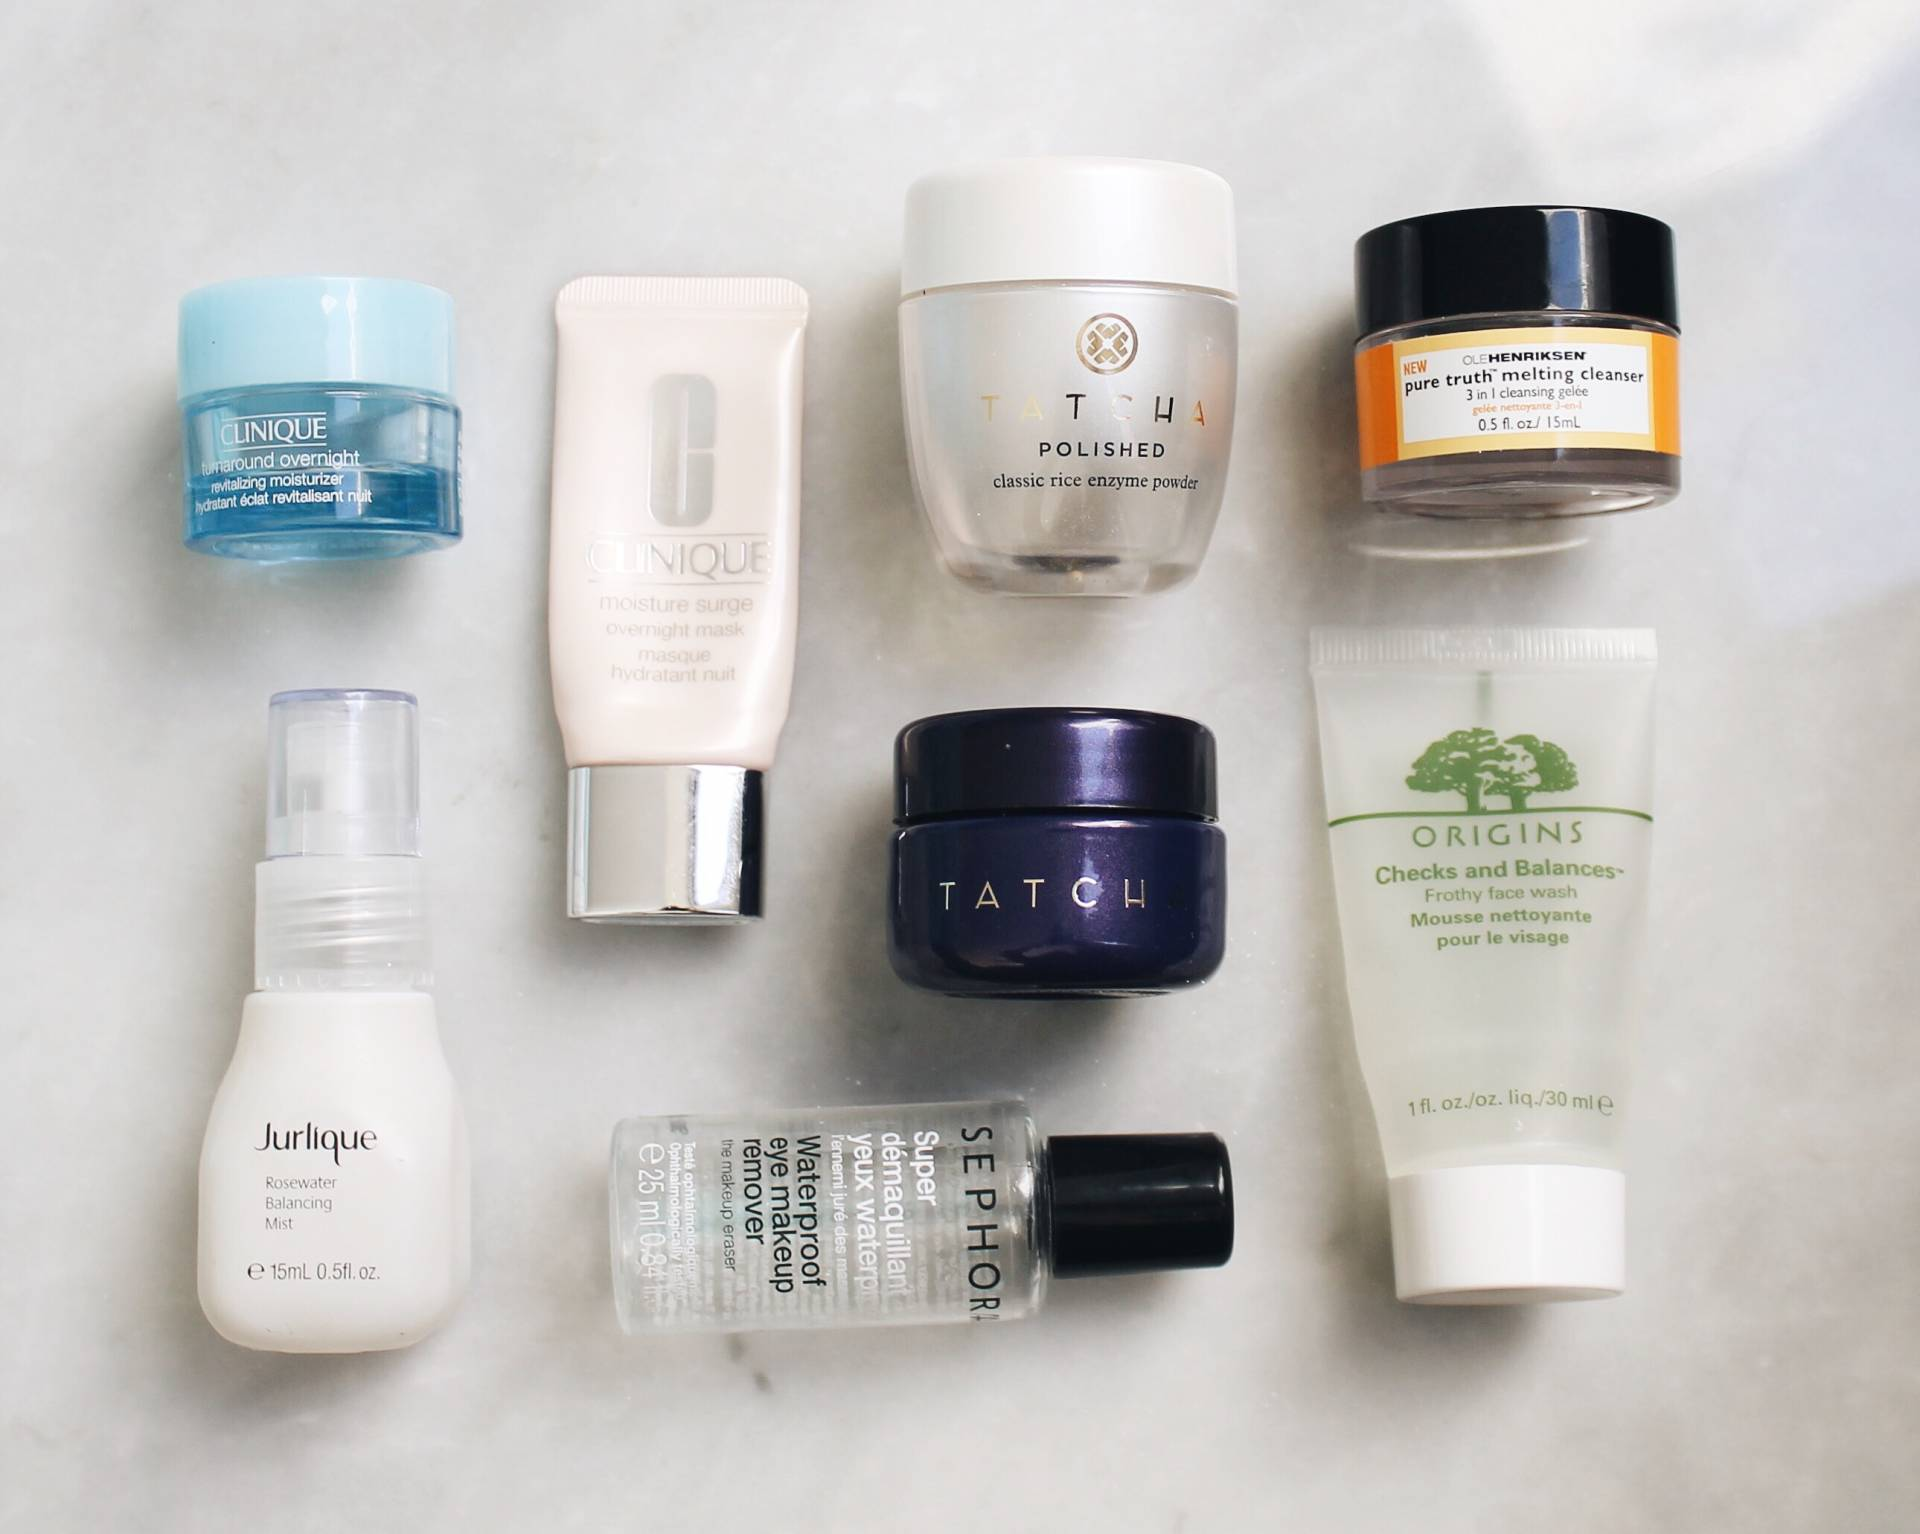 Products I've Finished: Empties tatcha, origins, ole henriksen, clinique, jurlique, sephora